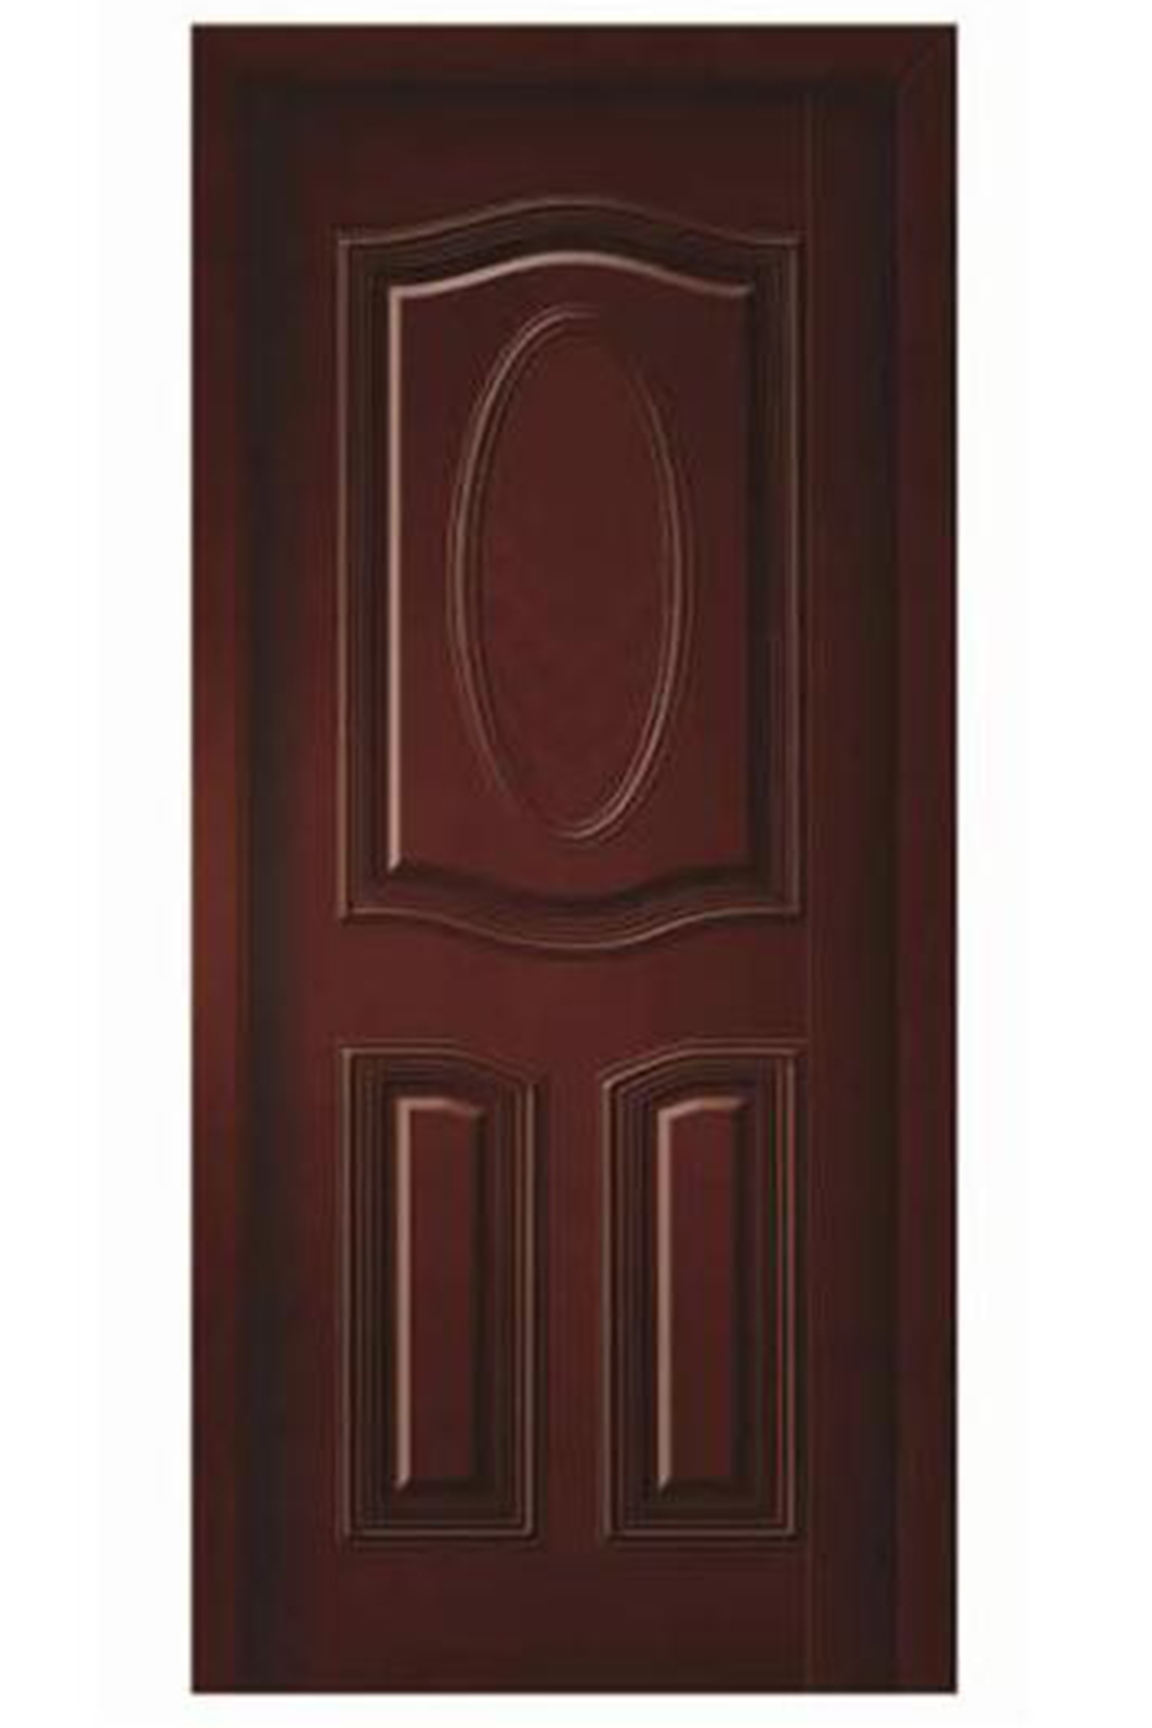 Everyone is difficult to install a wooden door on the wall when they first time install the door. So let me introduce the china wooden door first.  sc 1 st  SHANGHAI SUNFLOWER GROUP CO. LTD. & How to install a China wooden door on the wall! u2013 SHANGHAI SUNFLOWER ...